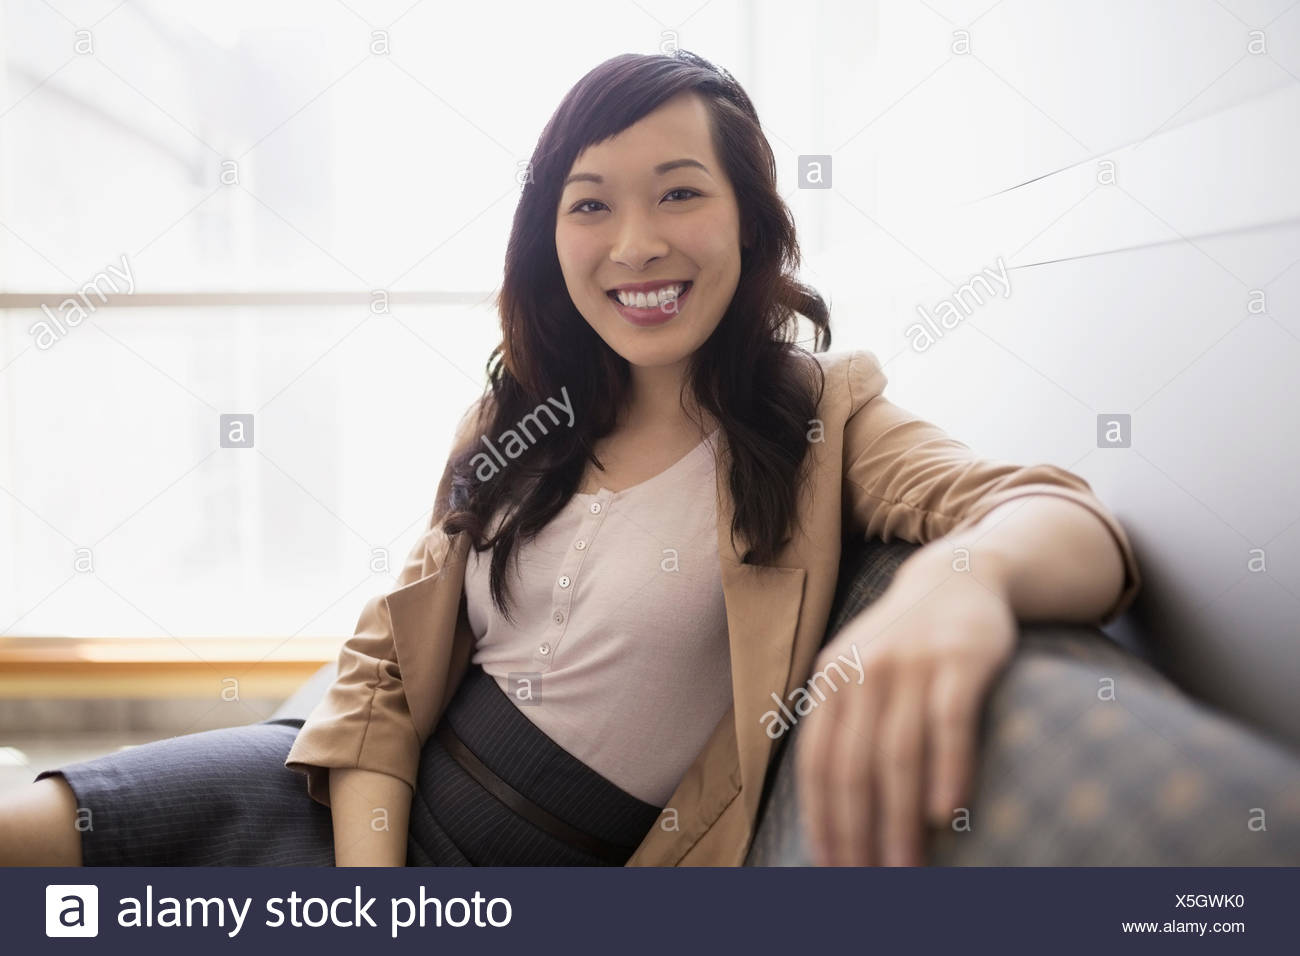 Portrait confident businesswoman Photo Stock